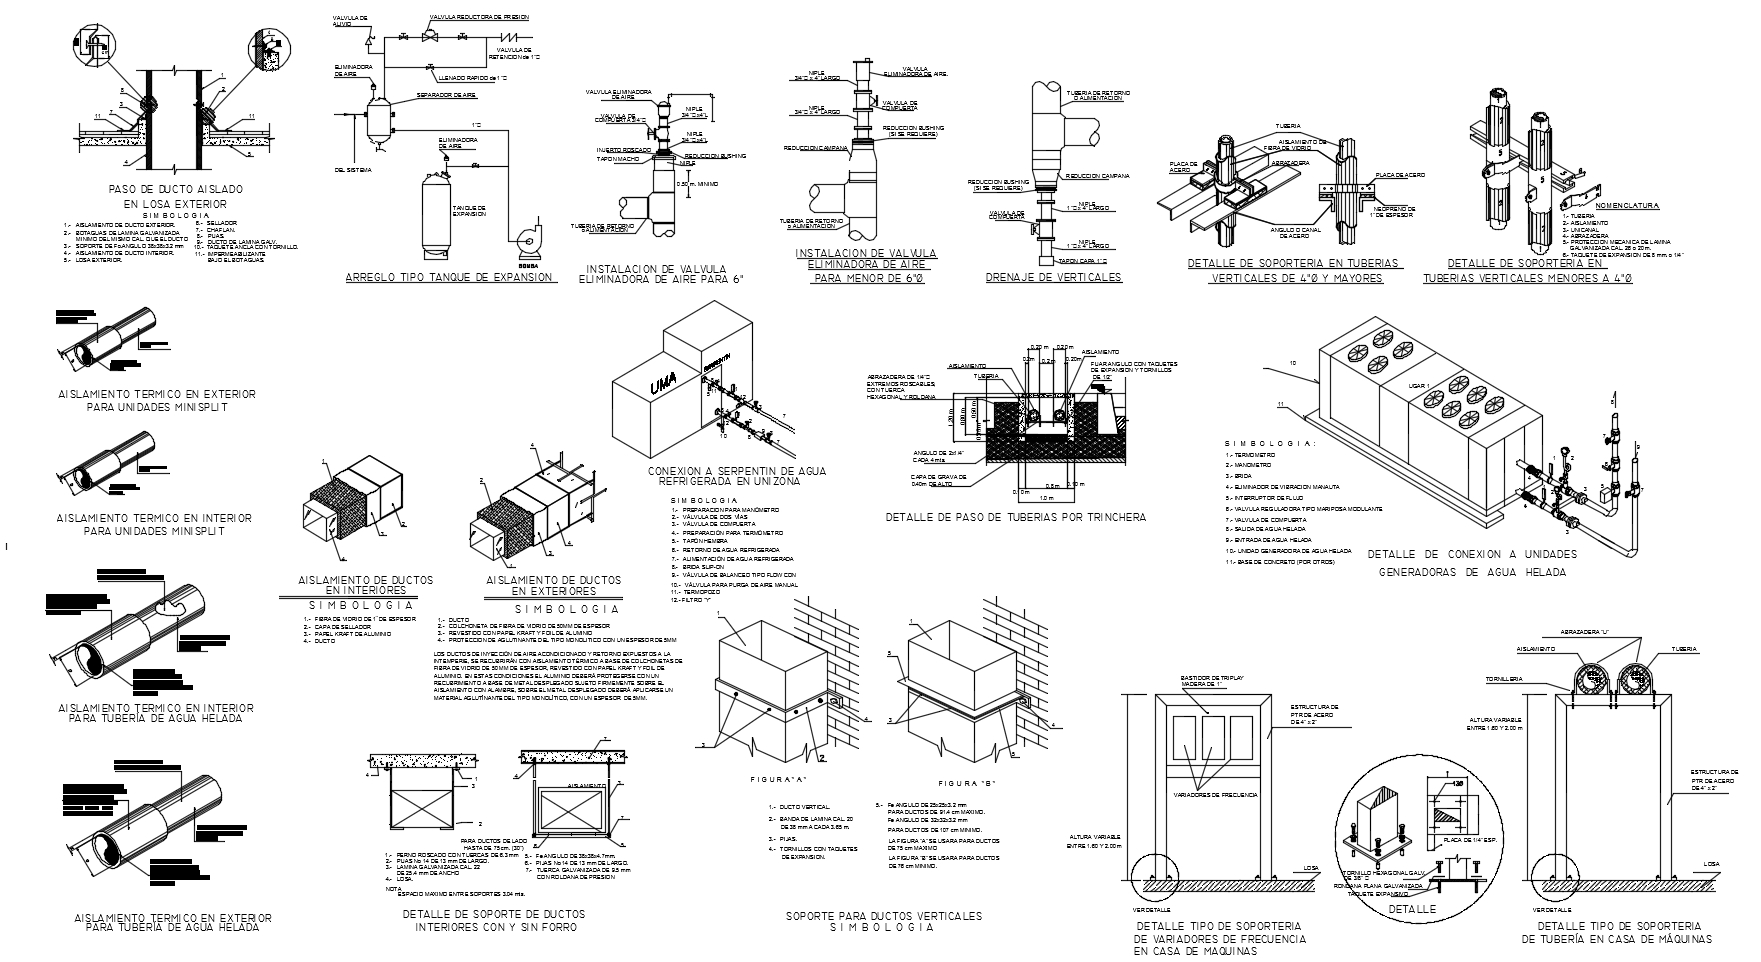 【CAD Details】CAD Details of Air Conditioning Equipment for